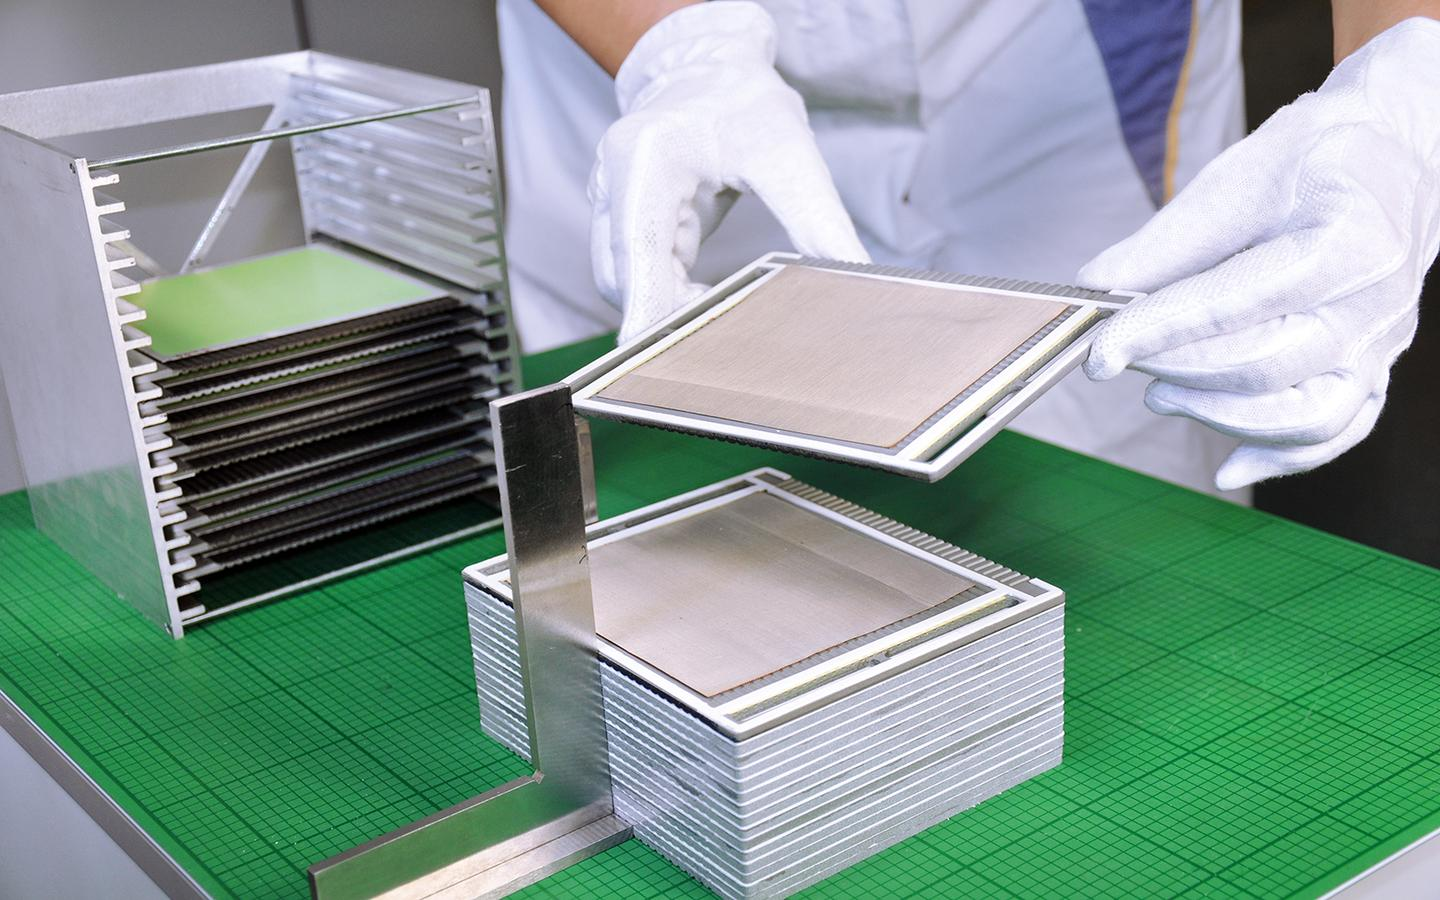 The cell stacks that are the heart of a home fuel cell system being developed by Fraunhofer (Photo: Fraunhofer IKTS)